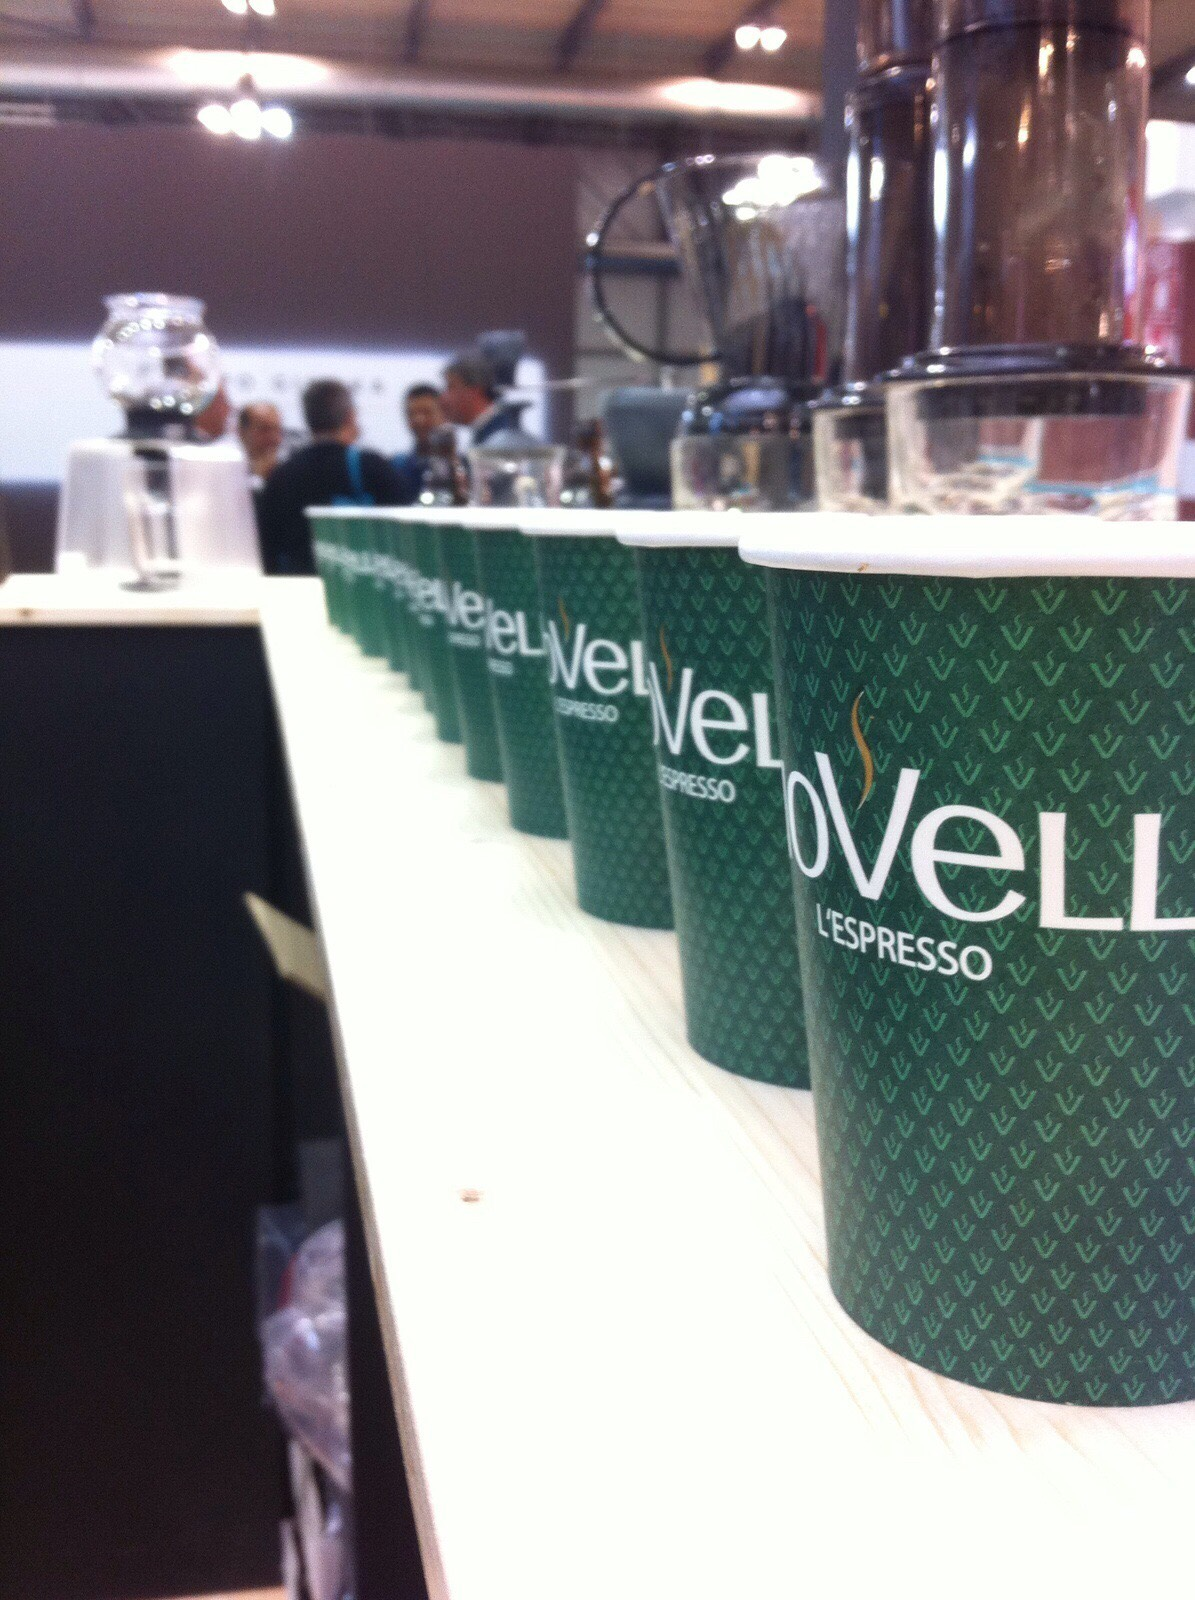 Coffee Business Training Center novell1.jpg